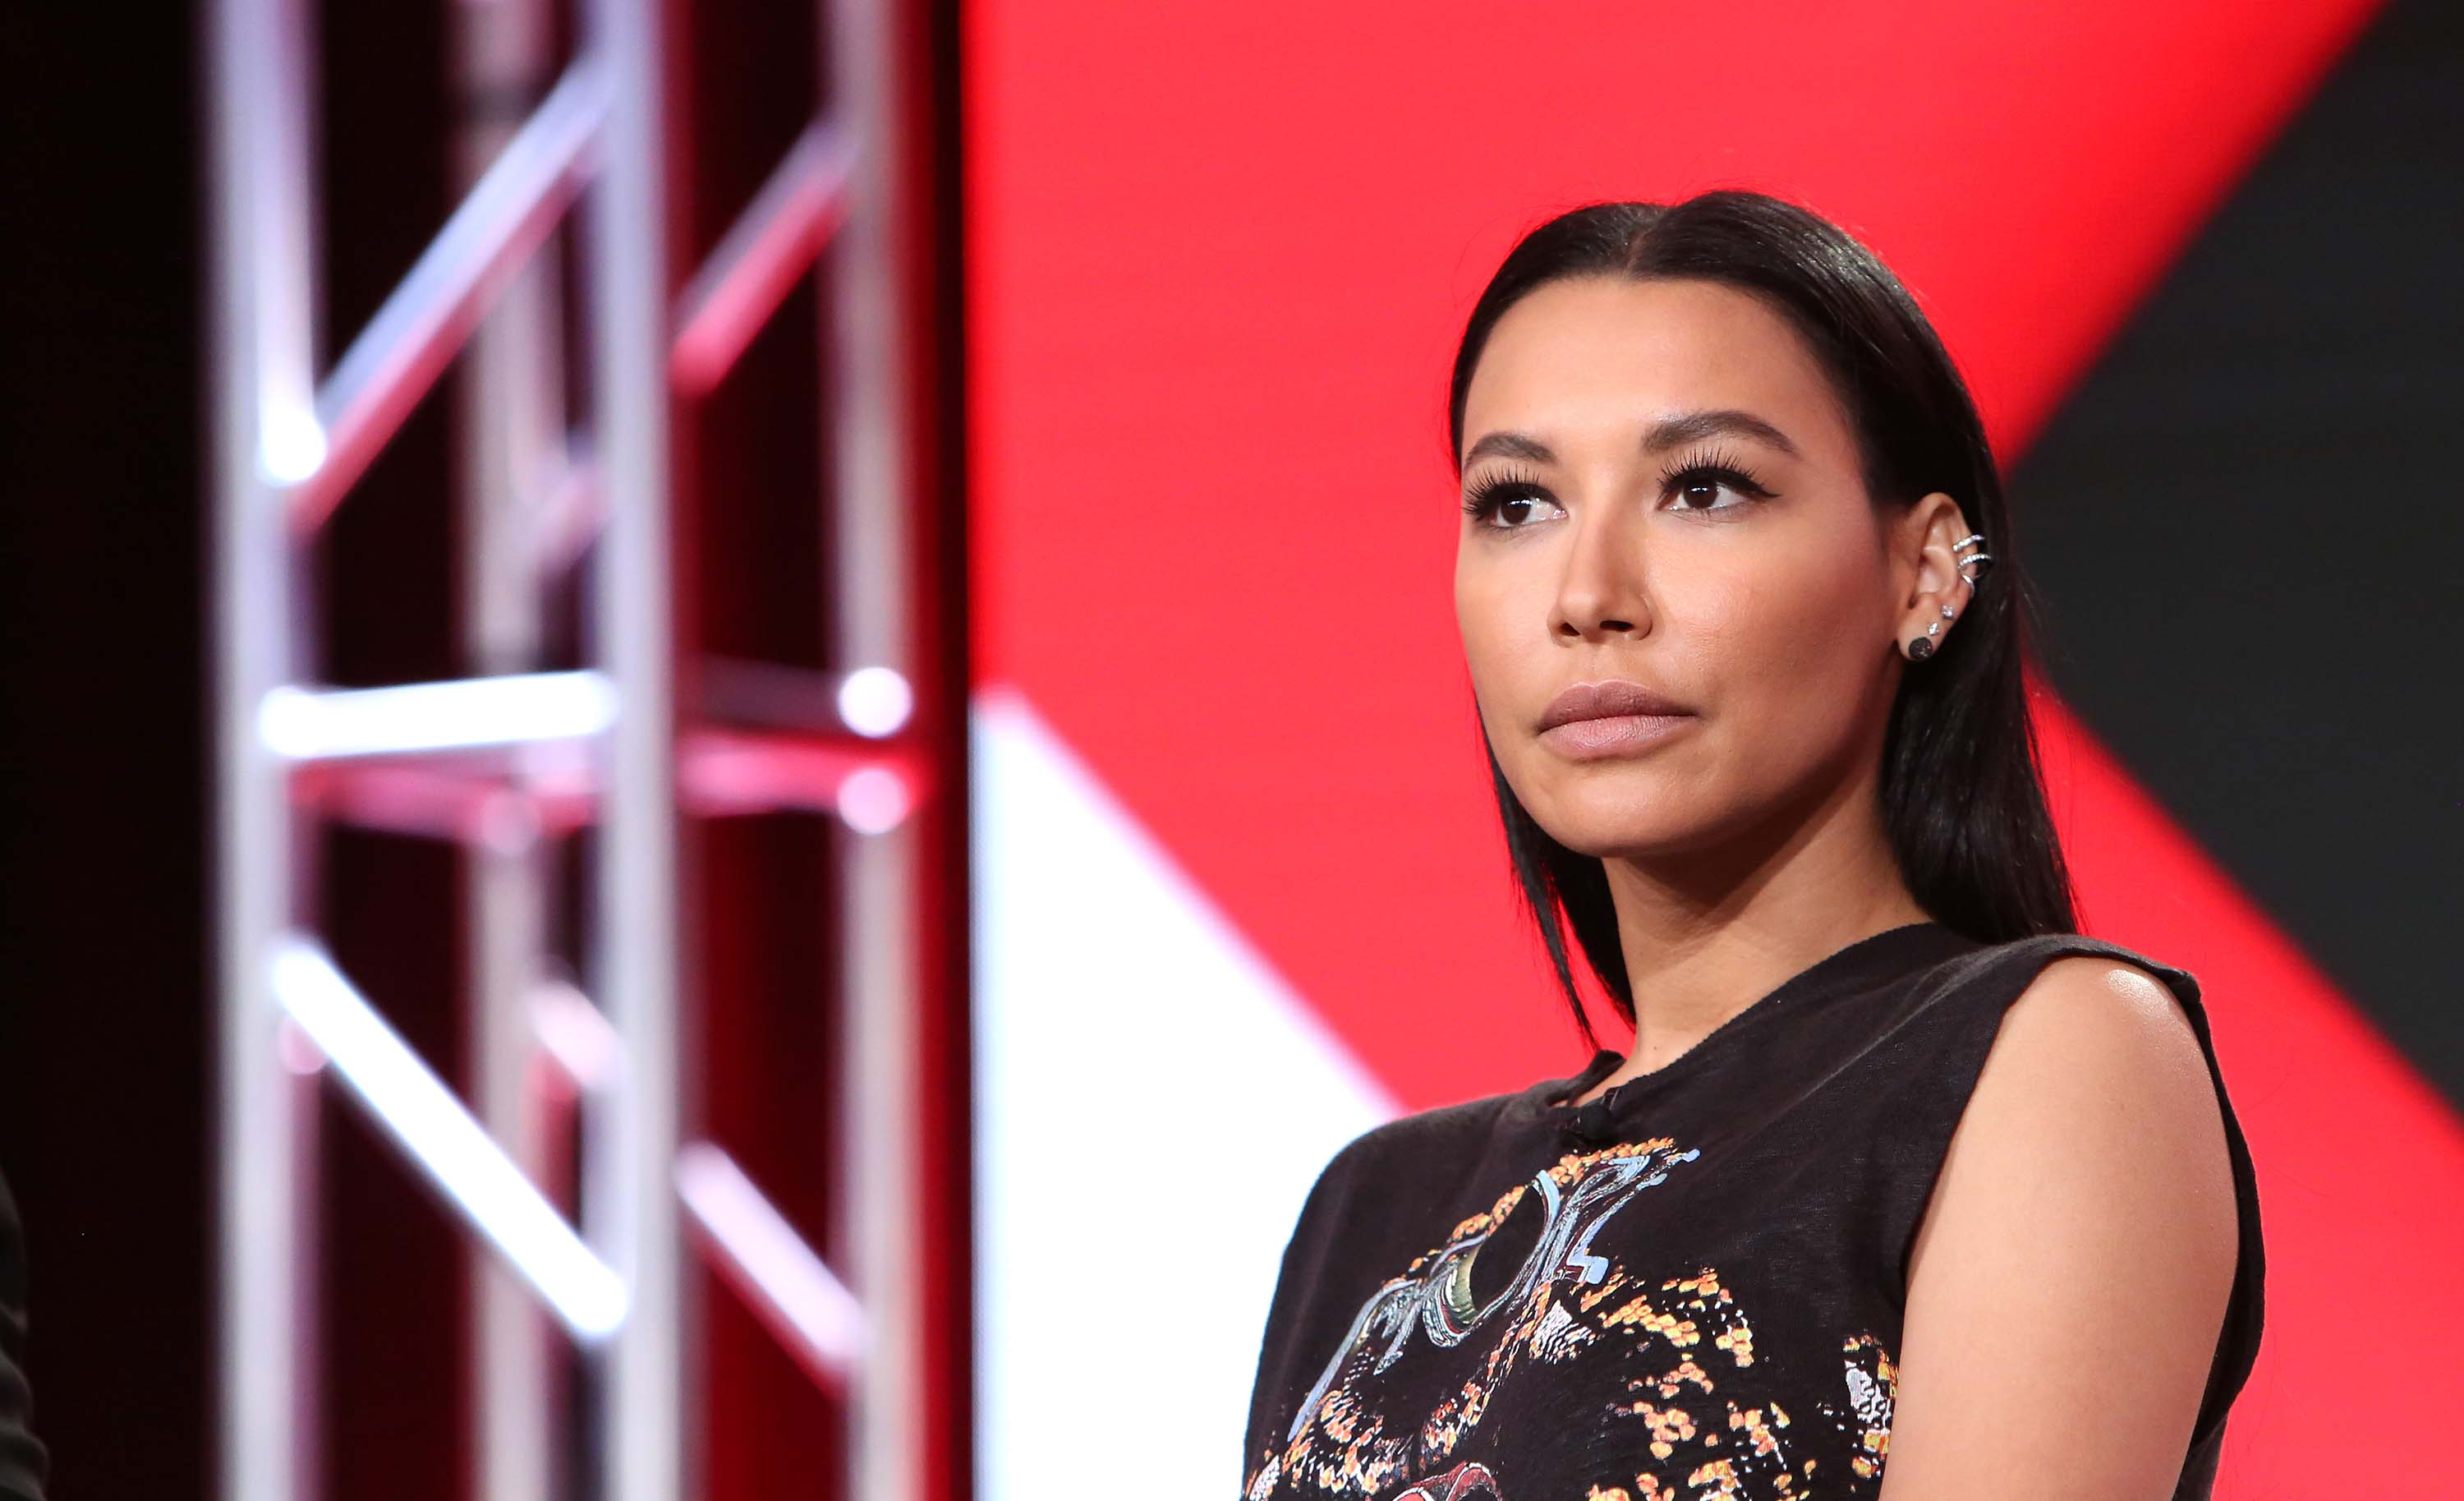 'Glee' actress Naya Rivera is missing at a lake in California